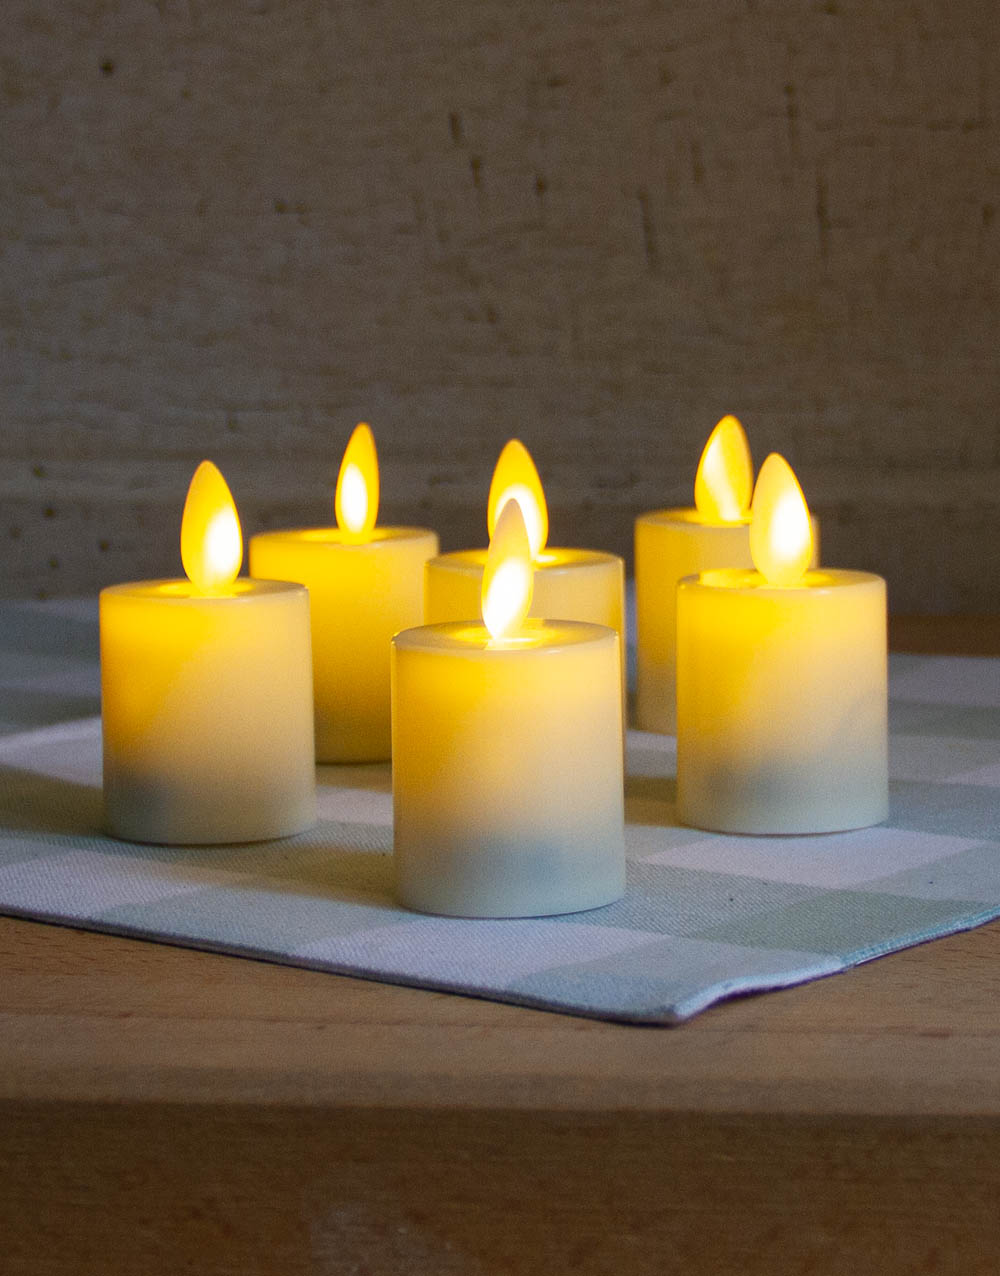 LED Flicker Votives with Remote